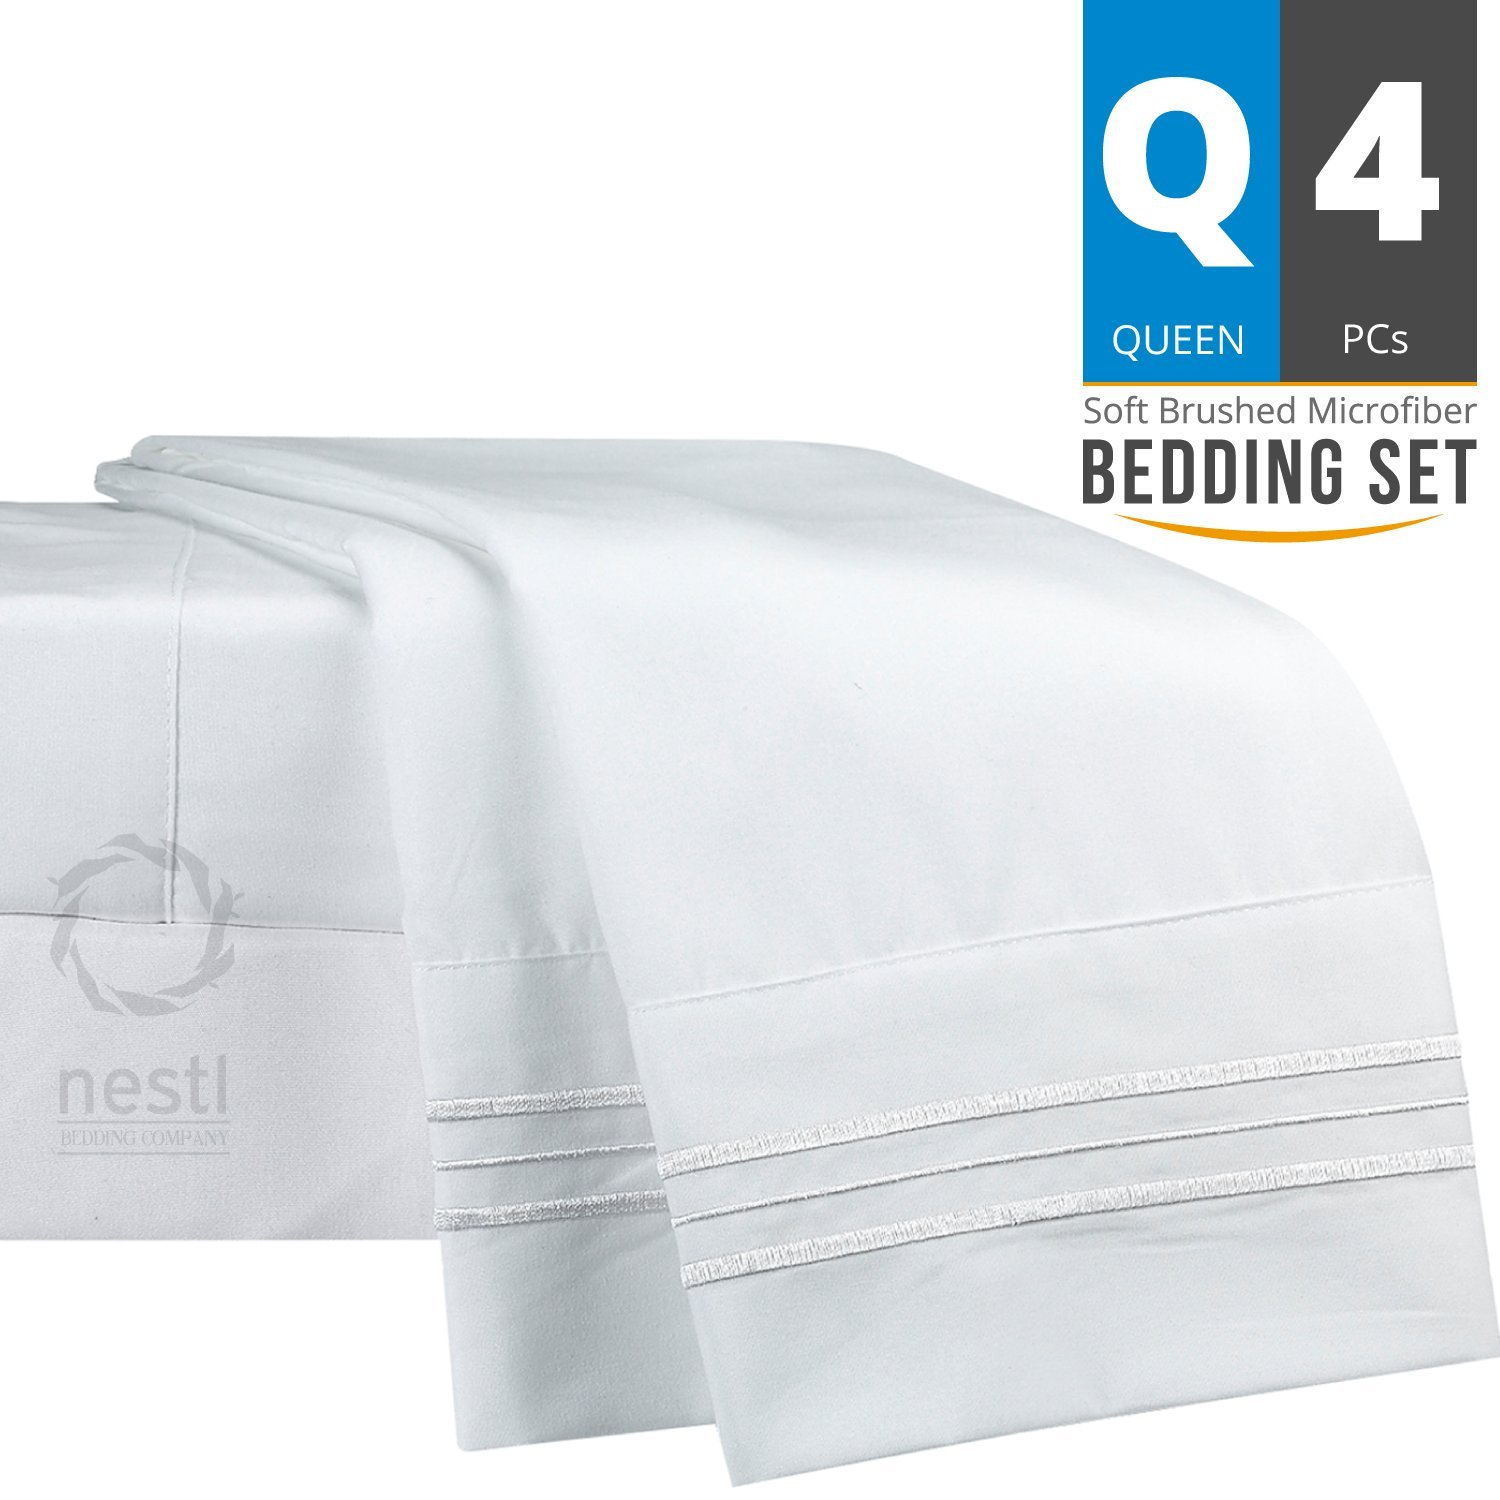 Bed Sheet Bedding Set, Queen Size